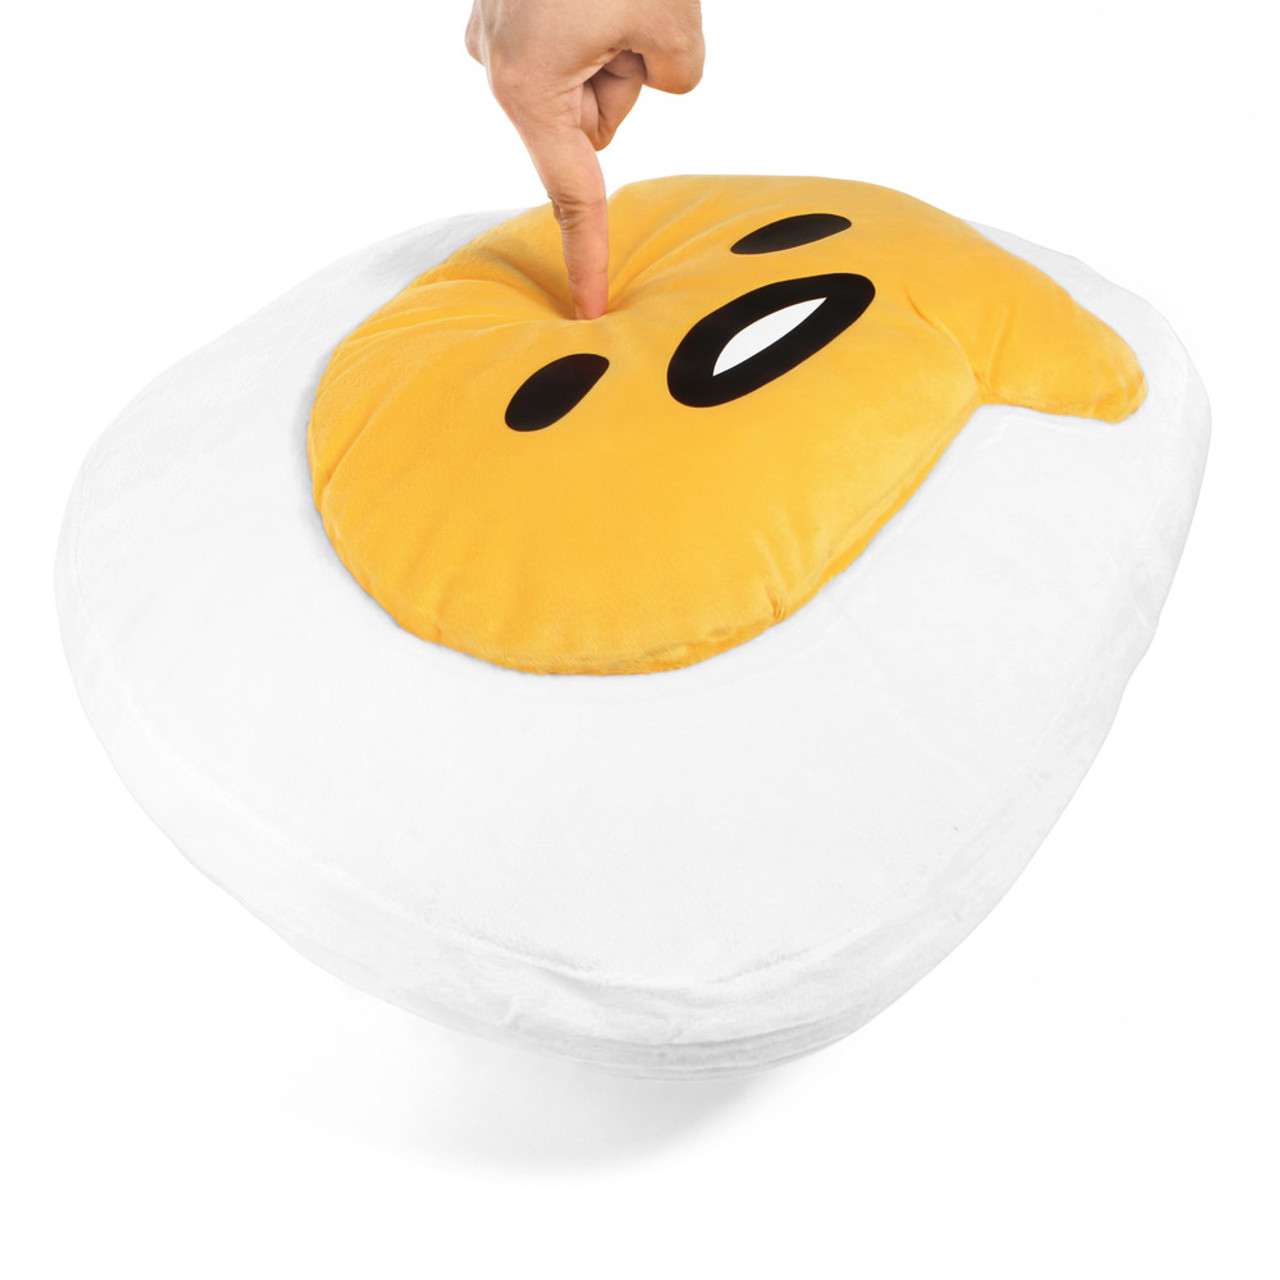 anrio Gudetama Lazy Egg Slices Egg Big Well Packing Cushion ( Proportion )